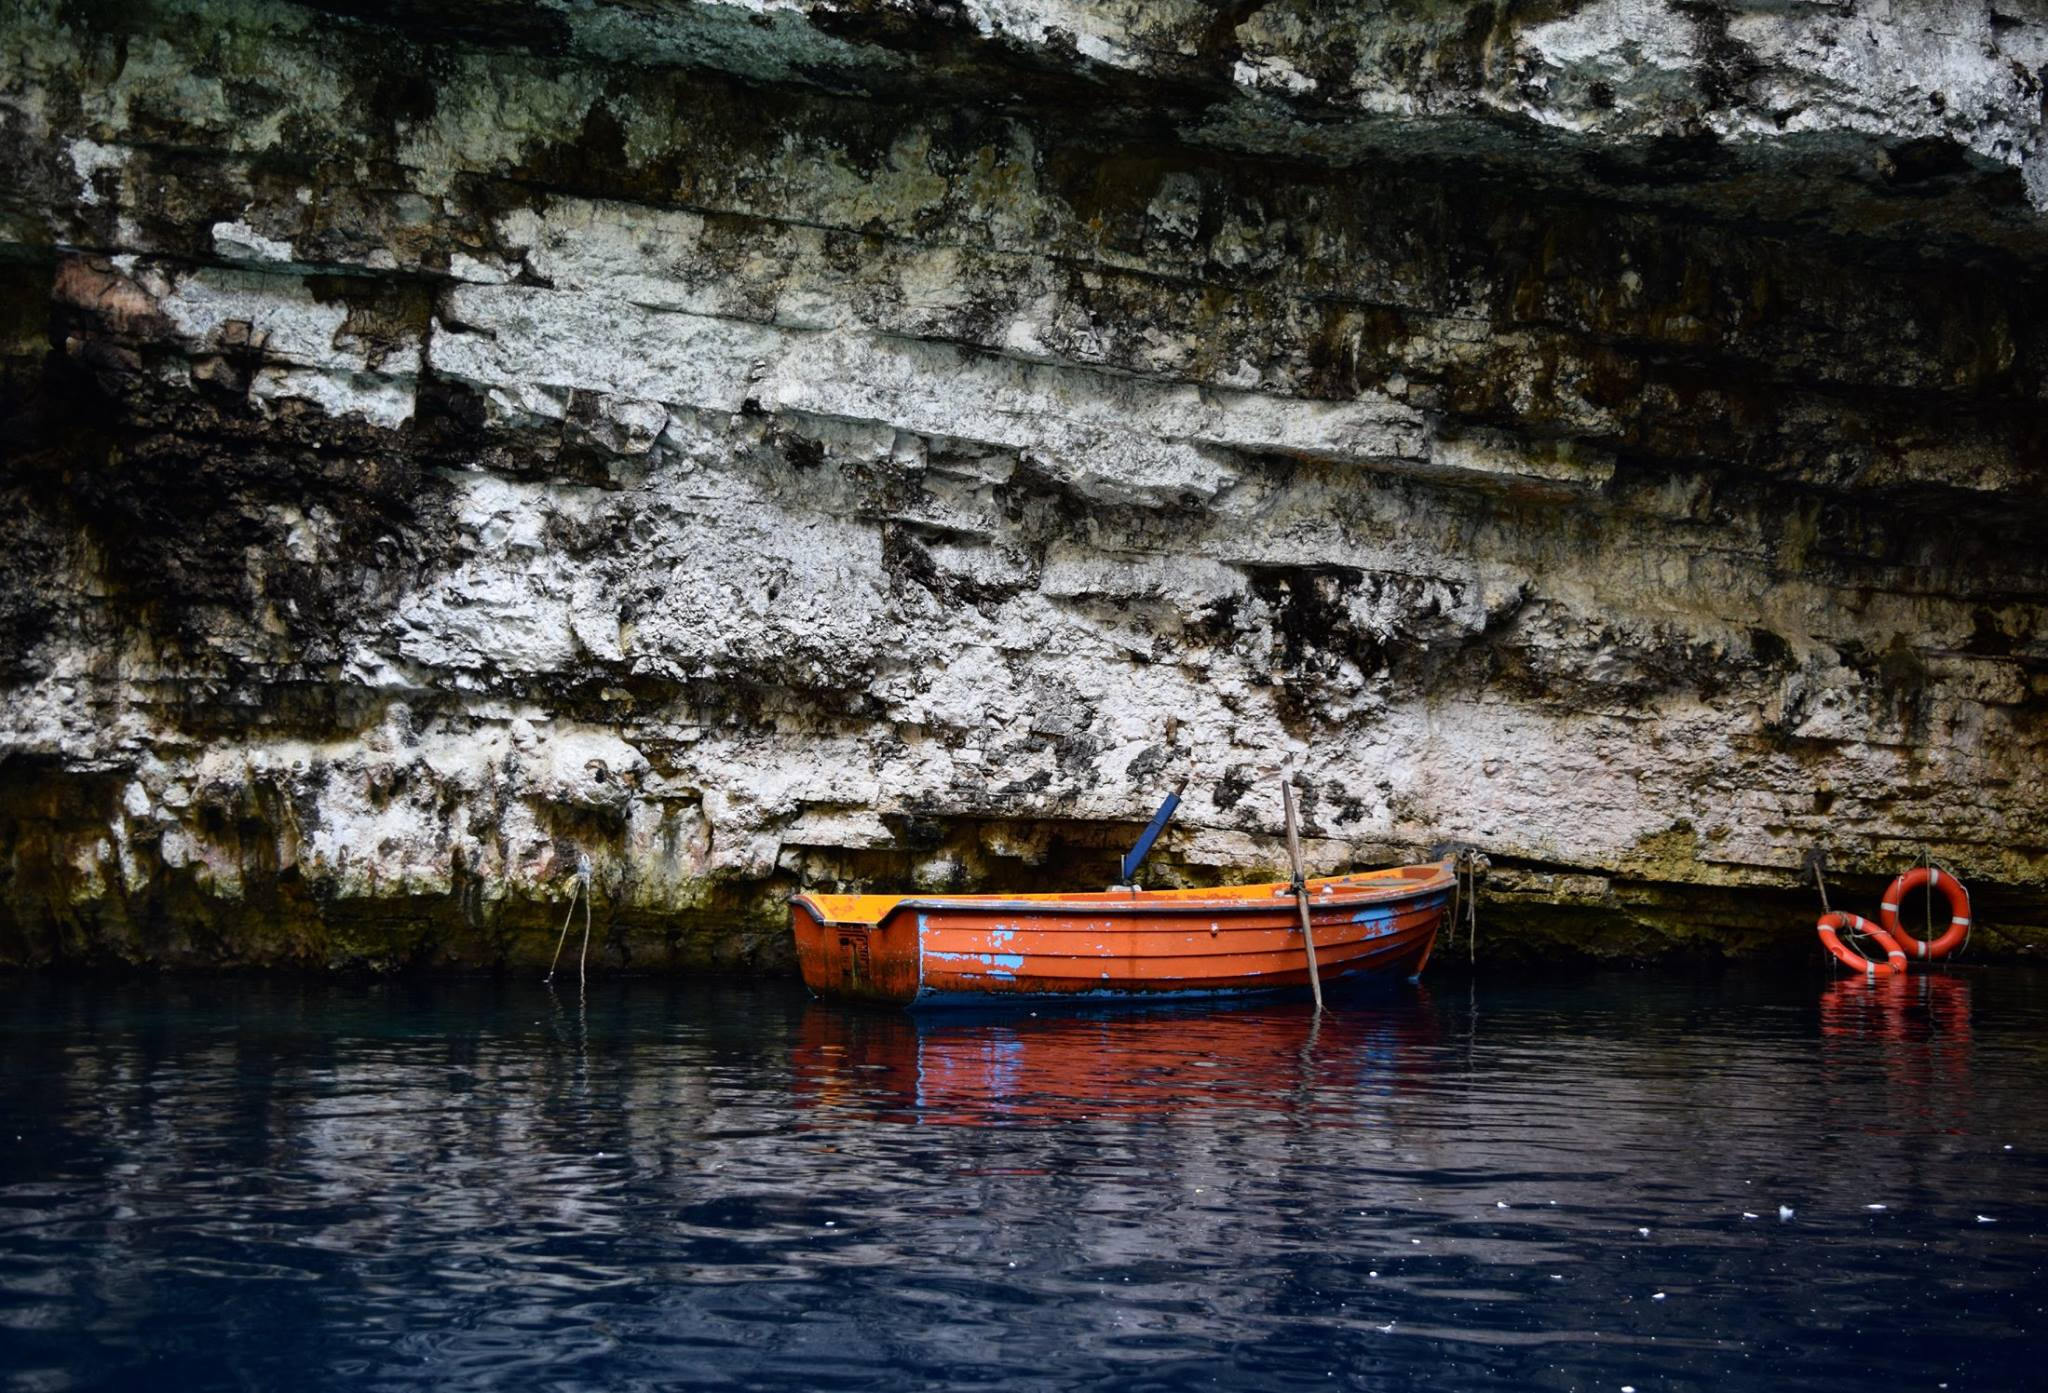 Boat in Mellisani Cave in Kefalonia, Greece